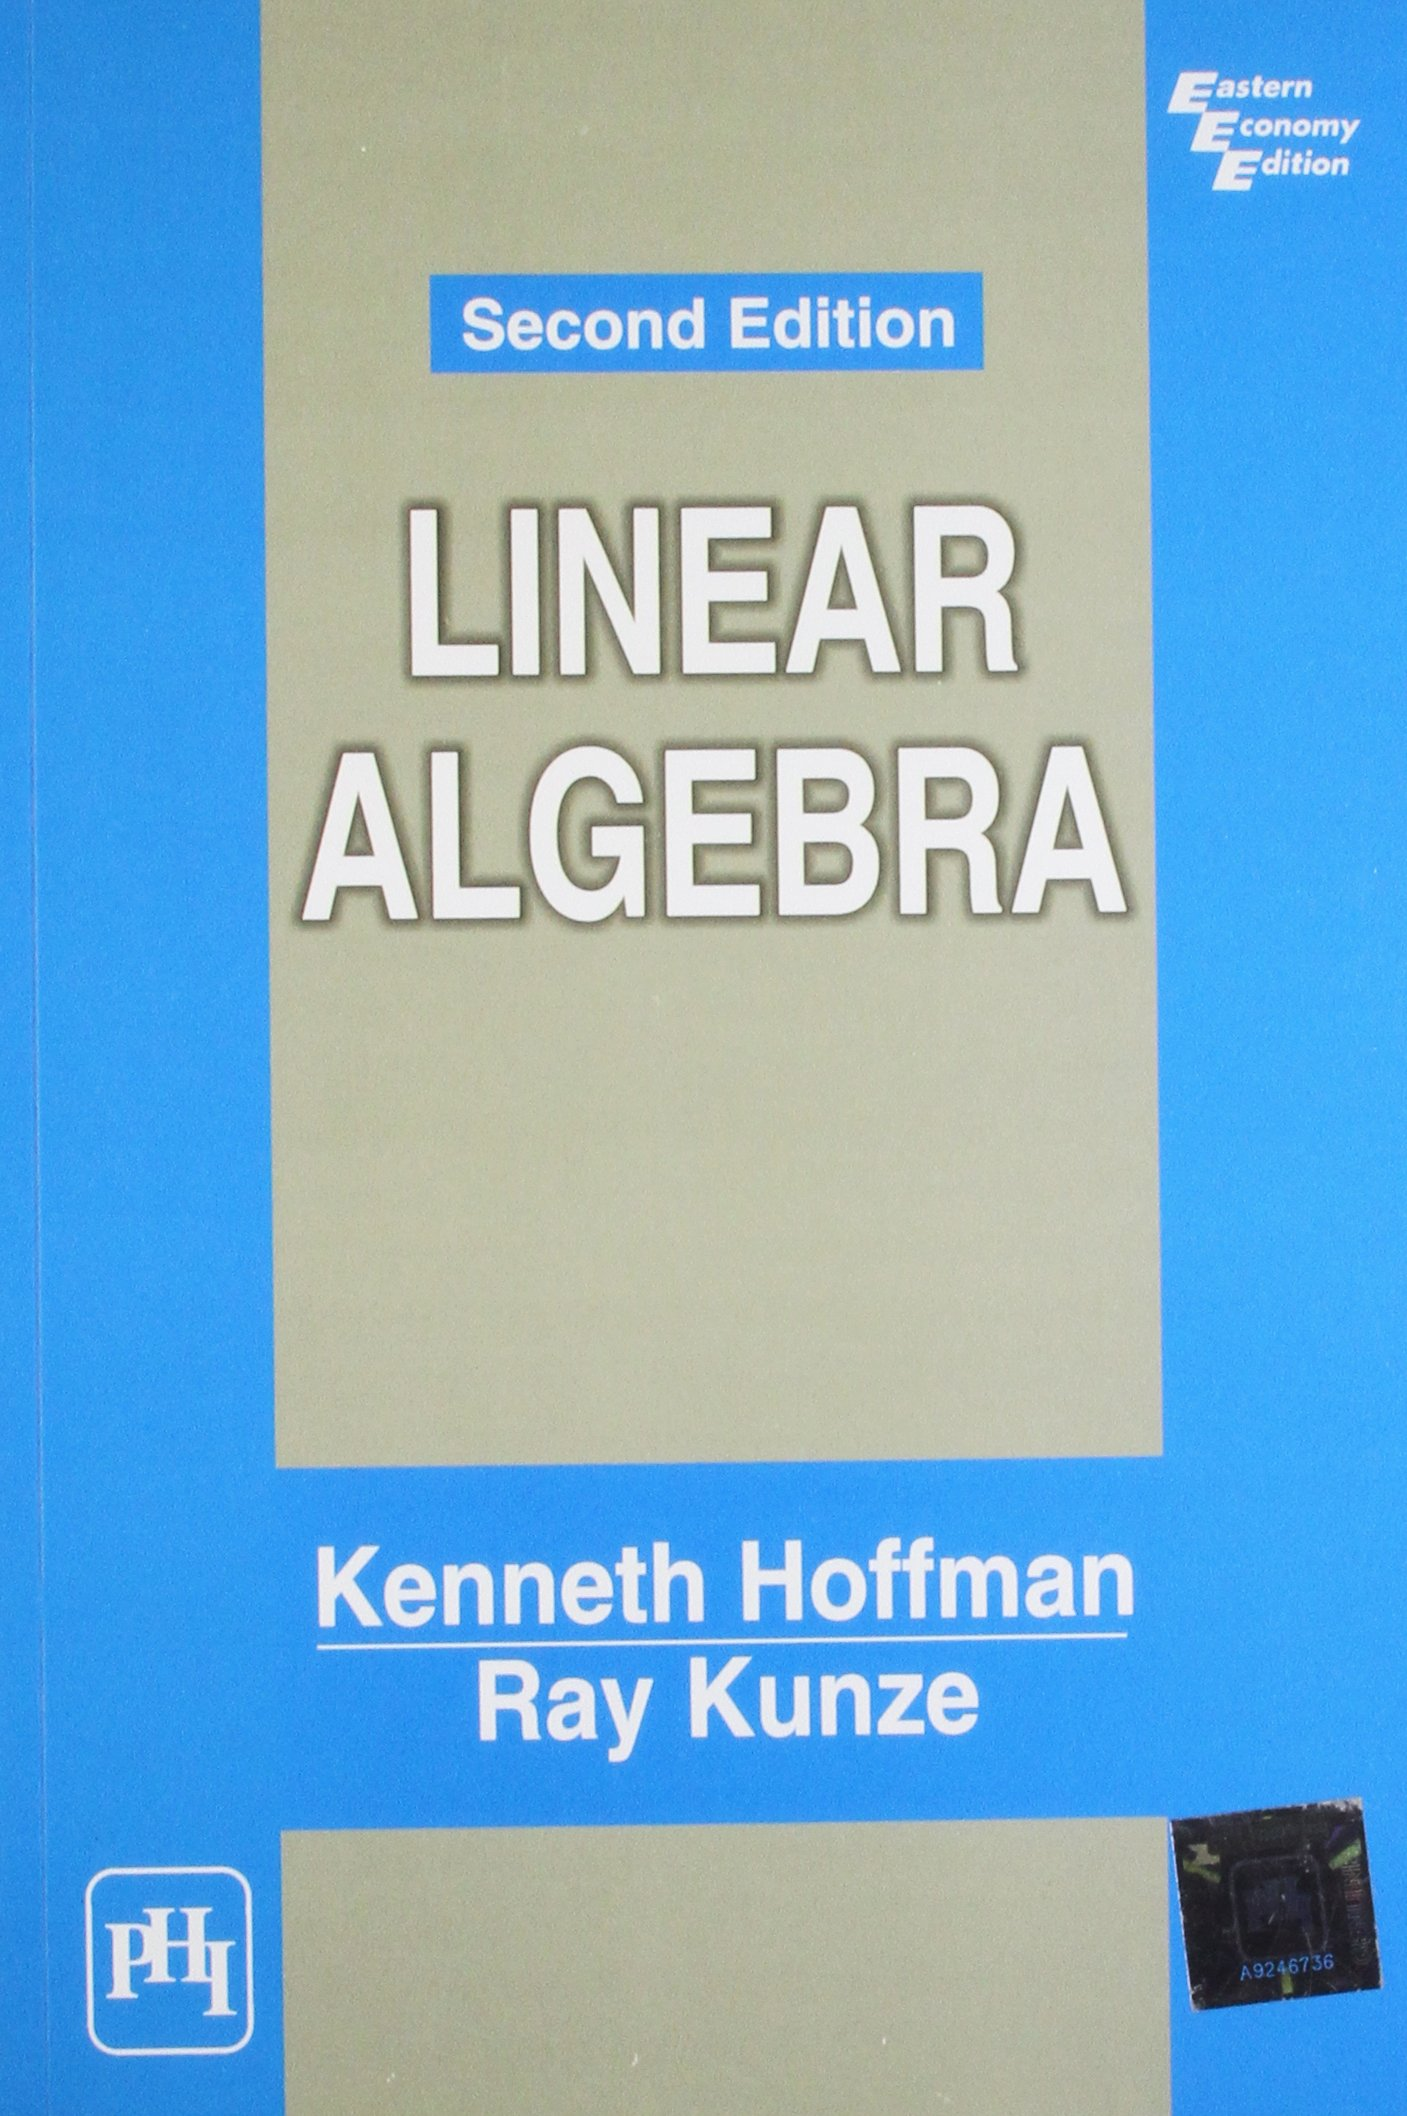 K.hoffman And R.kunze Linear Algebra Download